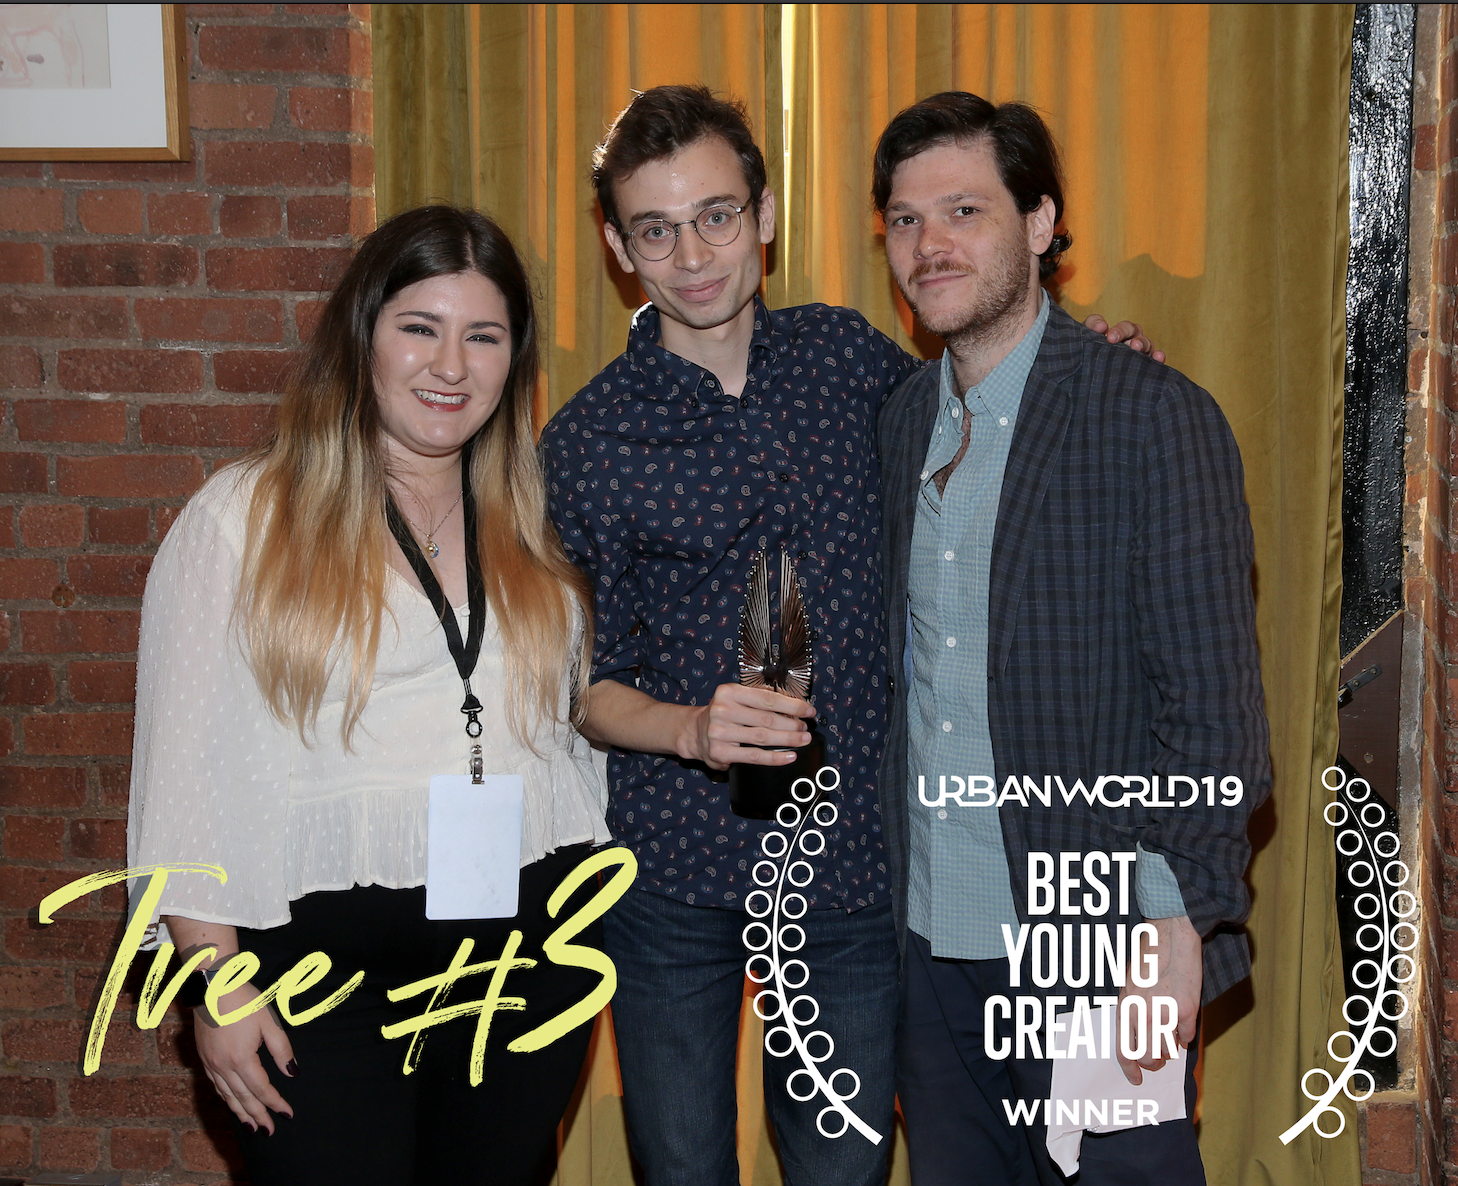 From left to right, Production Designer Katia Nájera, Director Omer Ben-Shachar, and Matthew Thurm.